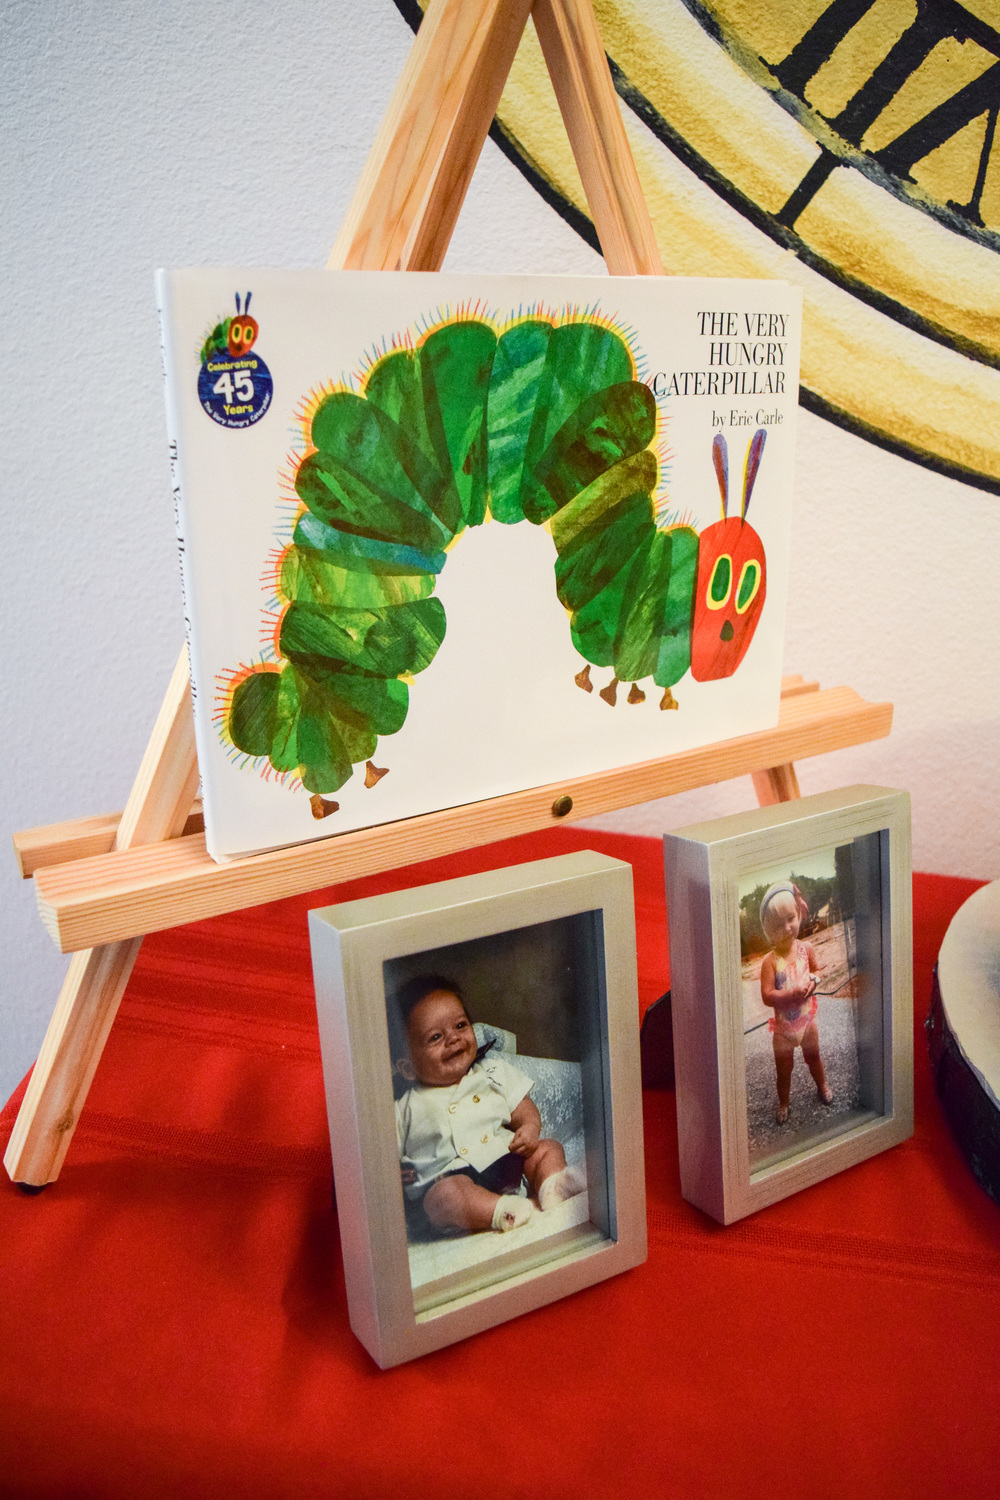 Our Very Hungry Caterpillar Themed Baby Shower